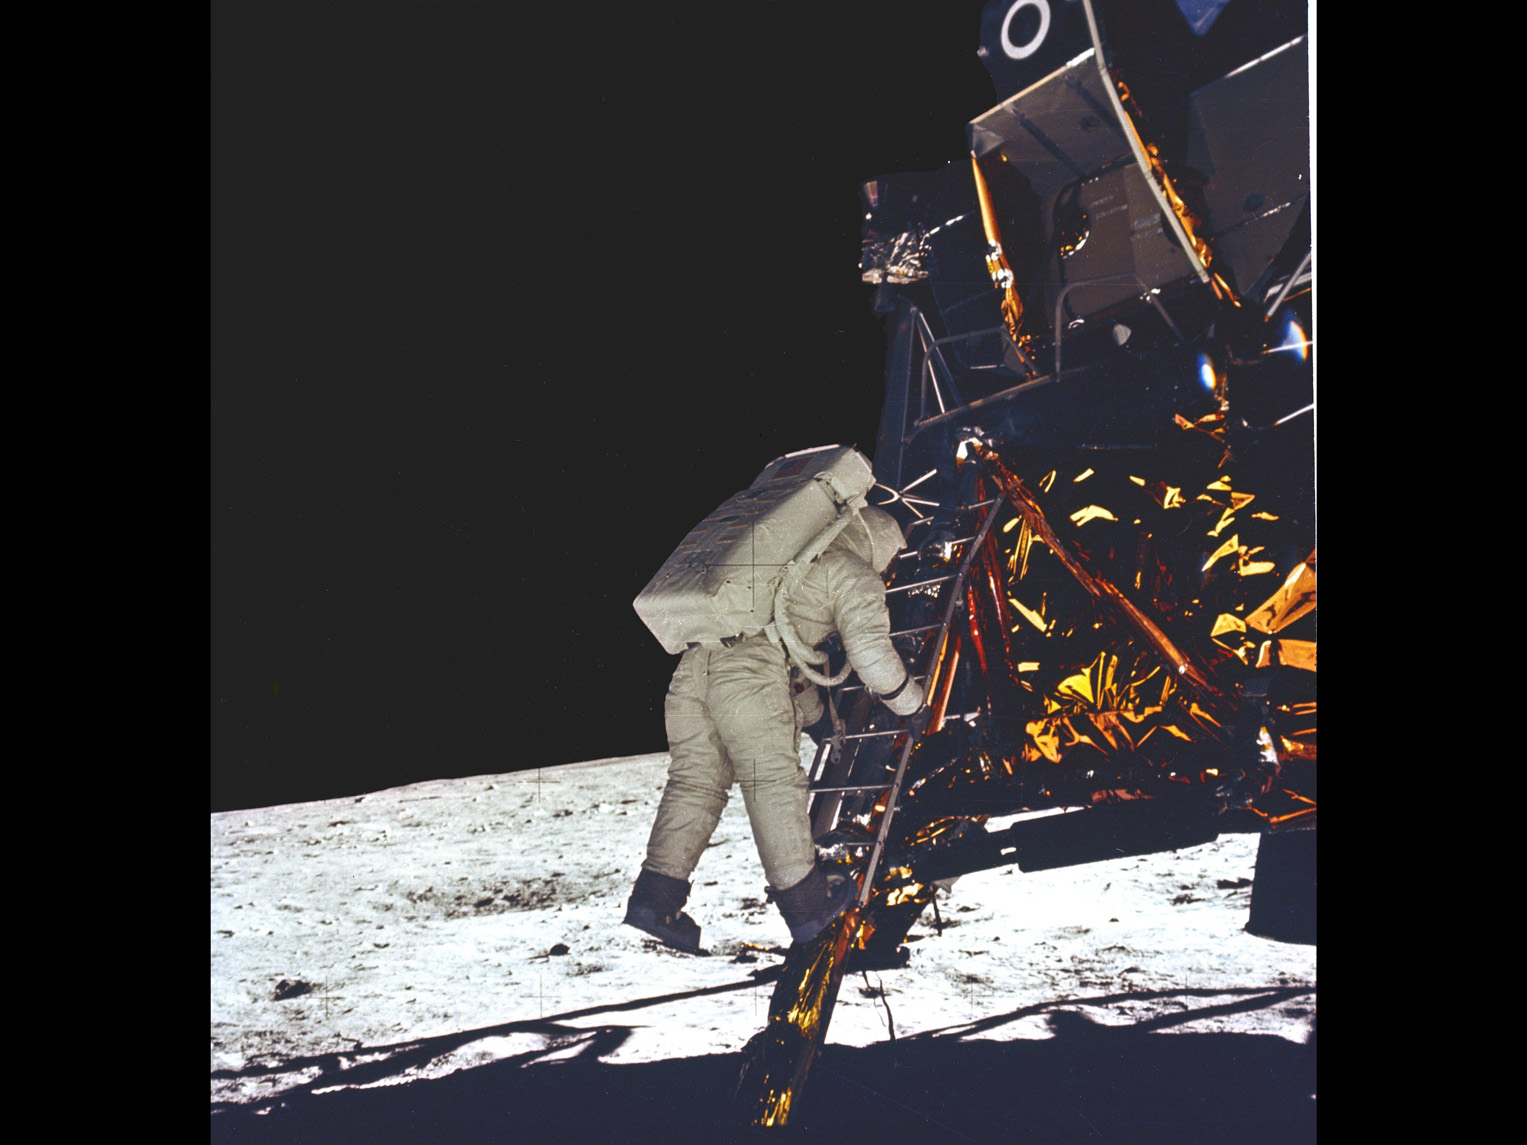 In a color photograph, an astronaut with a white spacesuit and large backpack descends a ladder. He is leaving a small spaceship and stepping down to walk on the moon.